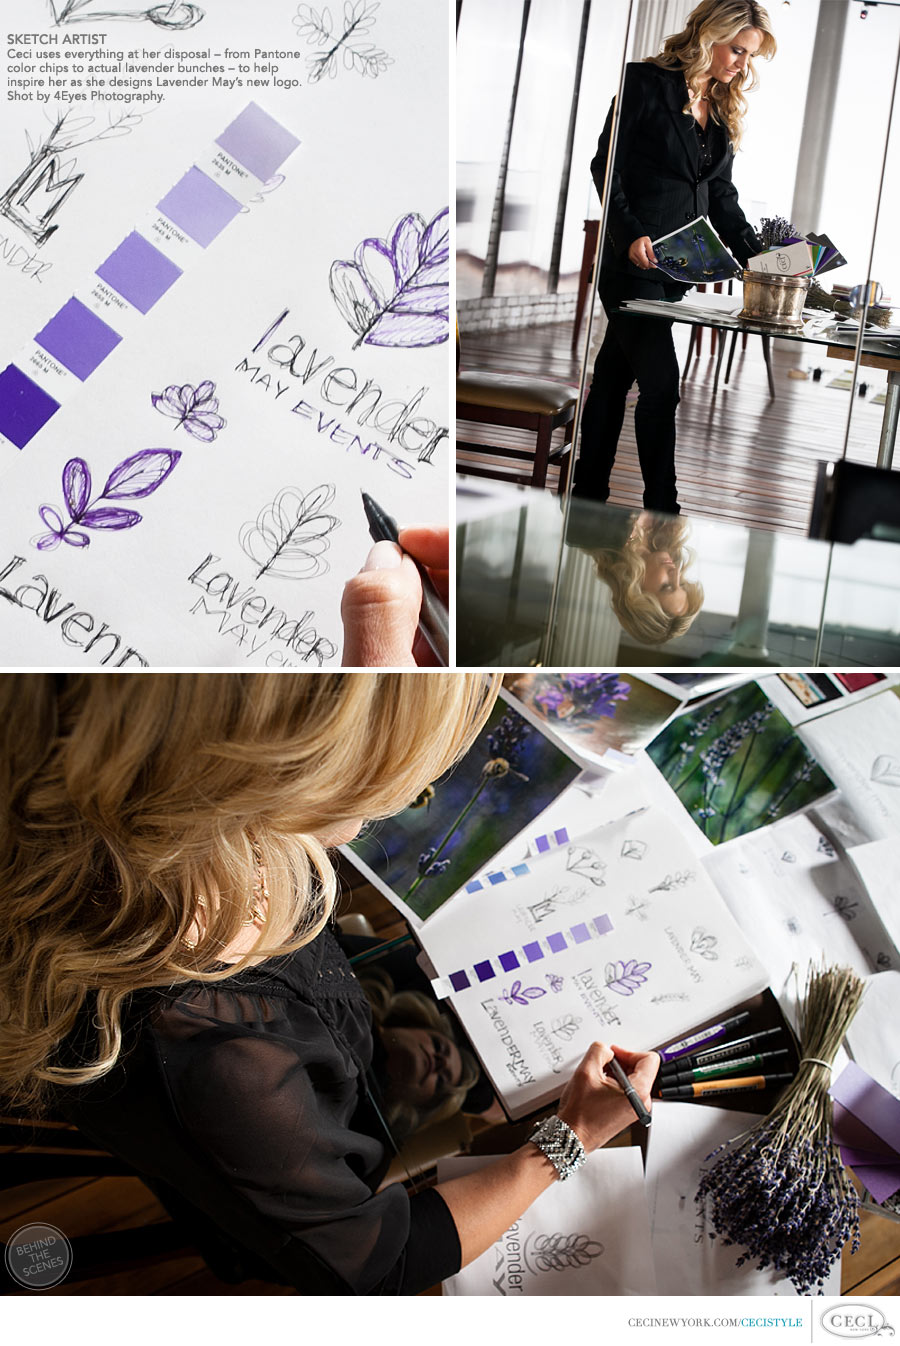 Ceci Johnson of Ceci New York - SKETCH ARTIST: Ceci uses everything at her disposal – from Pantone color chips to actual lavender bunches – to help inspire her as she designs Lavender May's new logo. Shot by 4Eyes Photography.